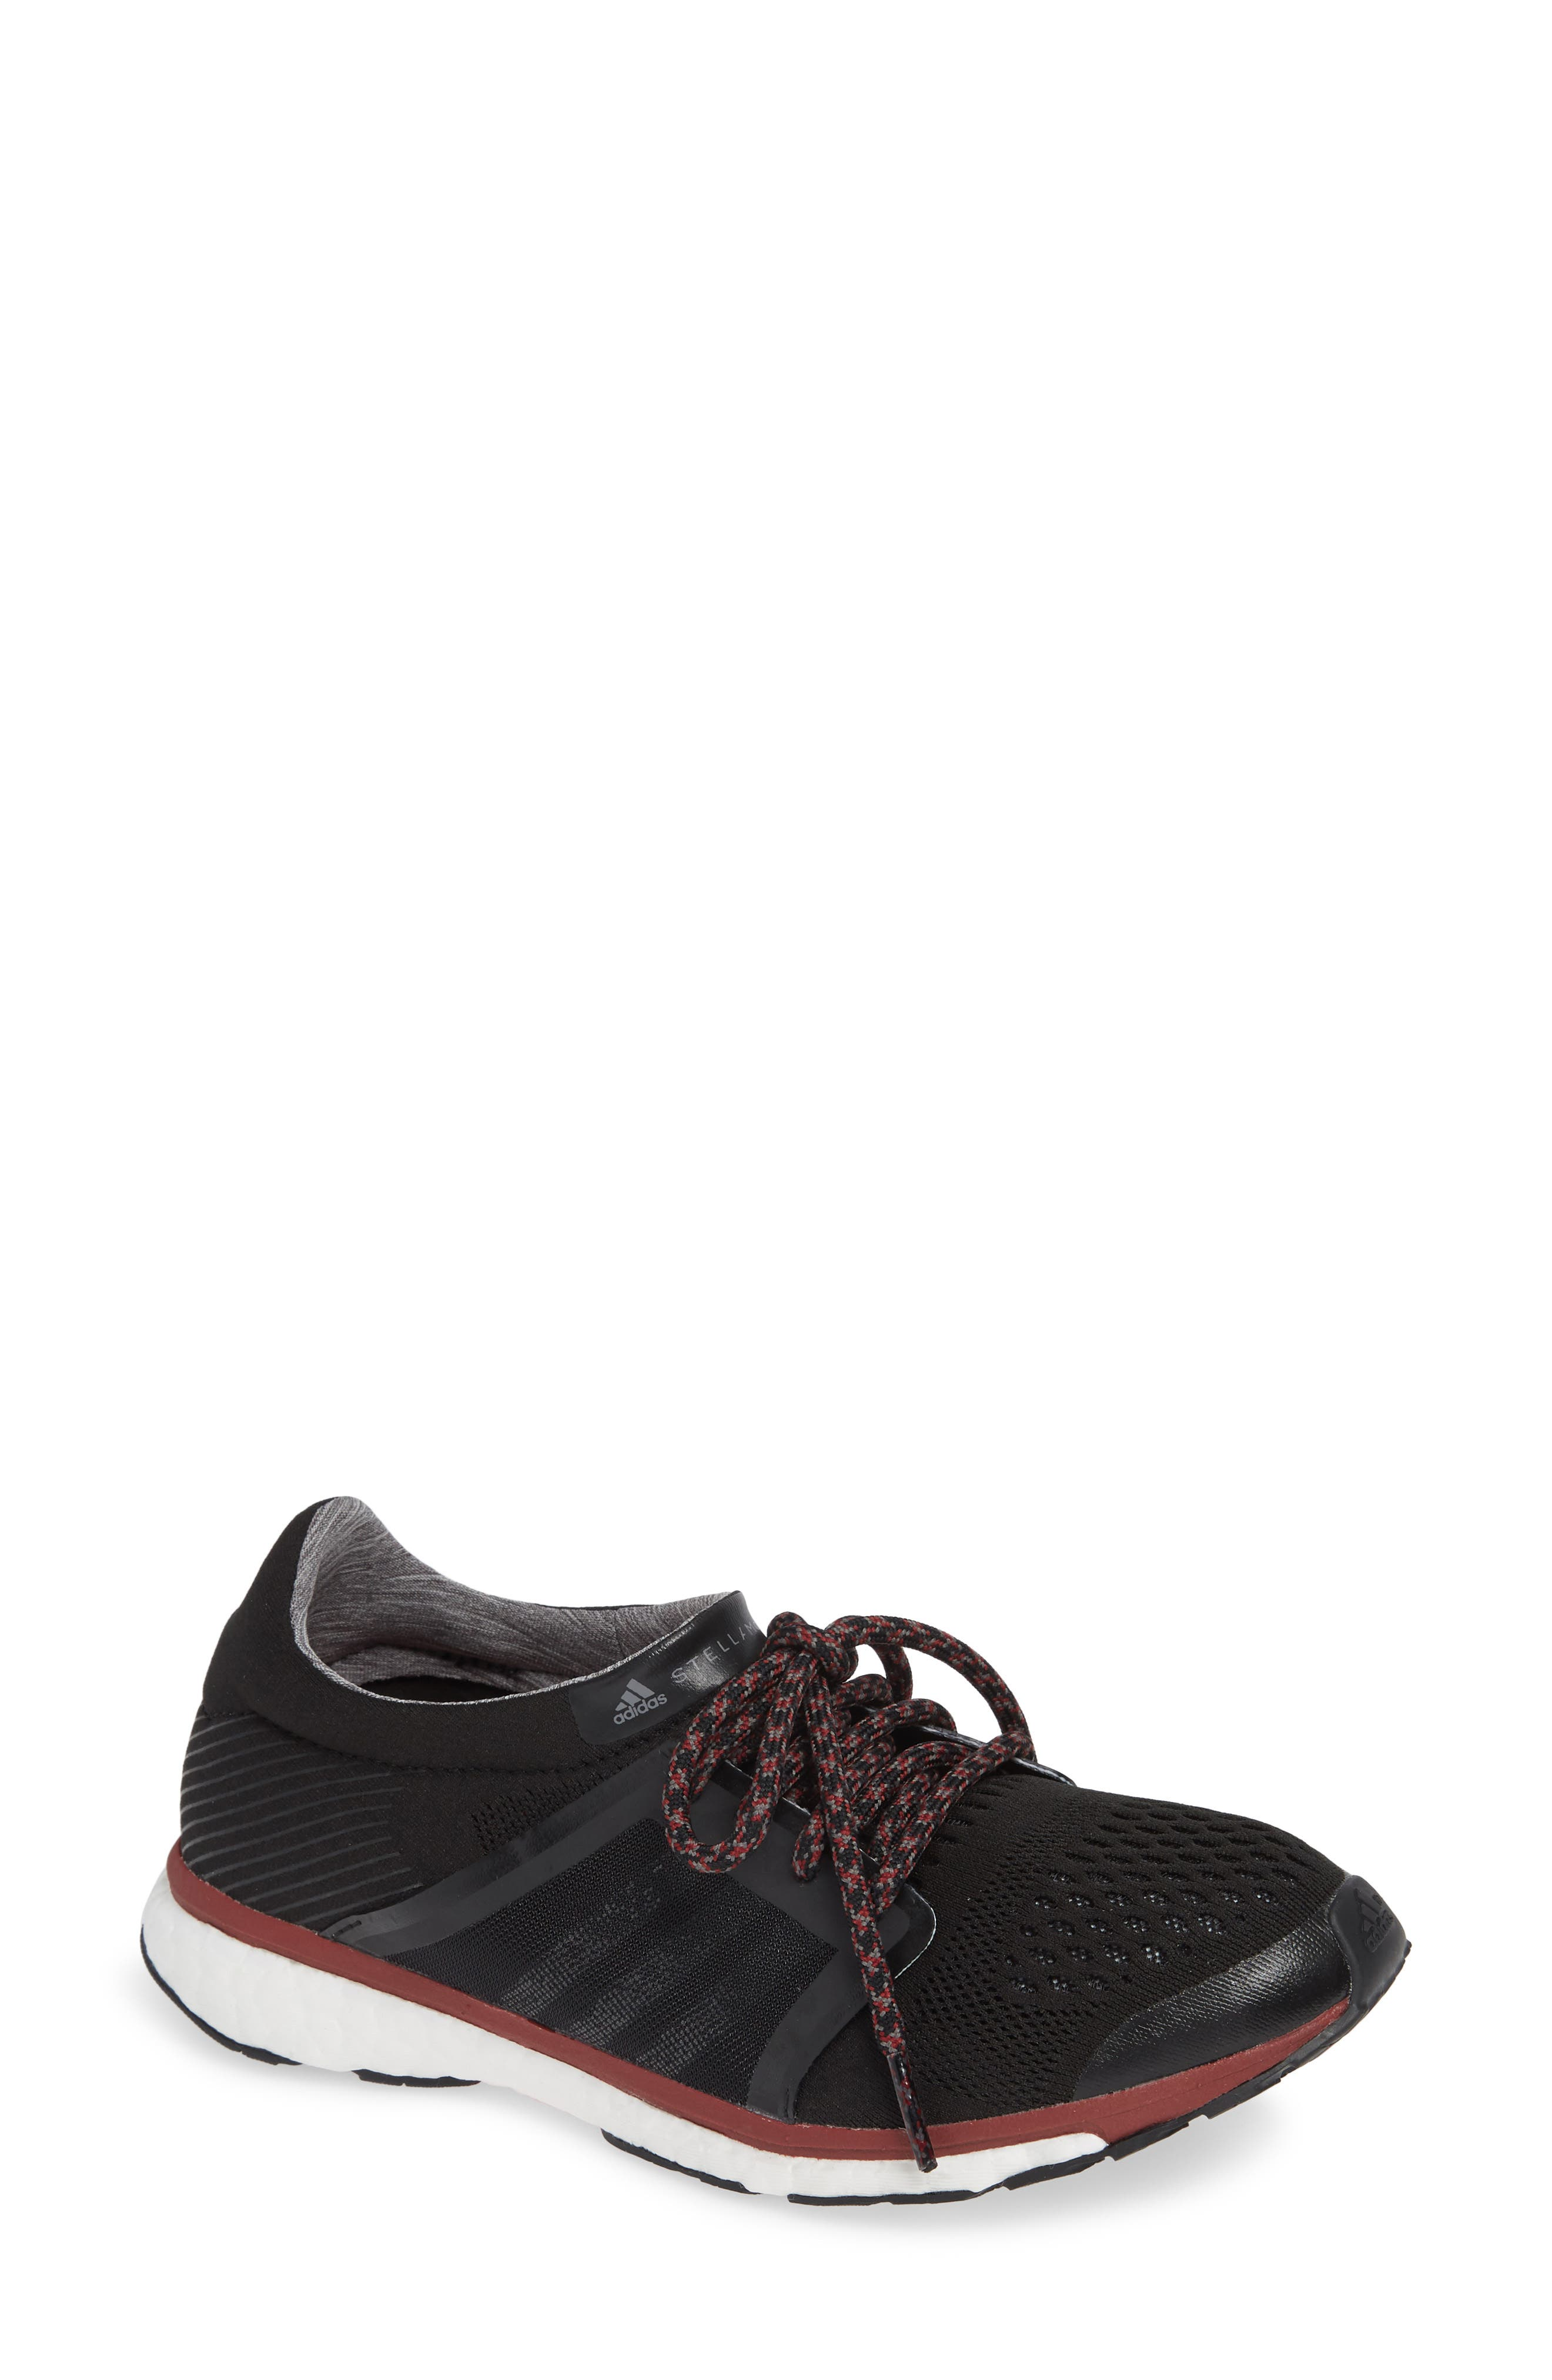 by Stella McCartney Adizero Adios Running Shoe,                             Main thumbnail 1, color,                             001